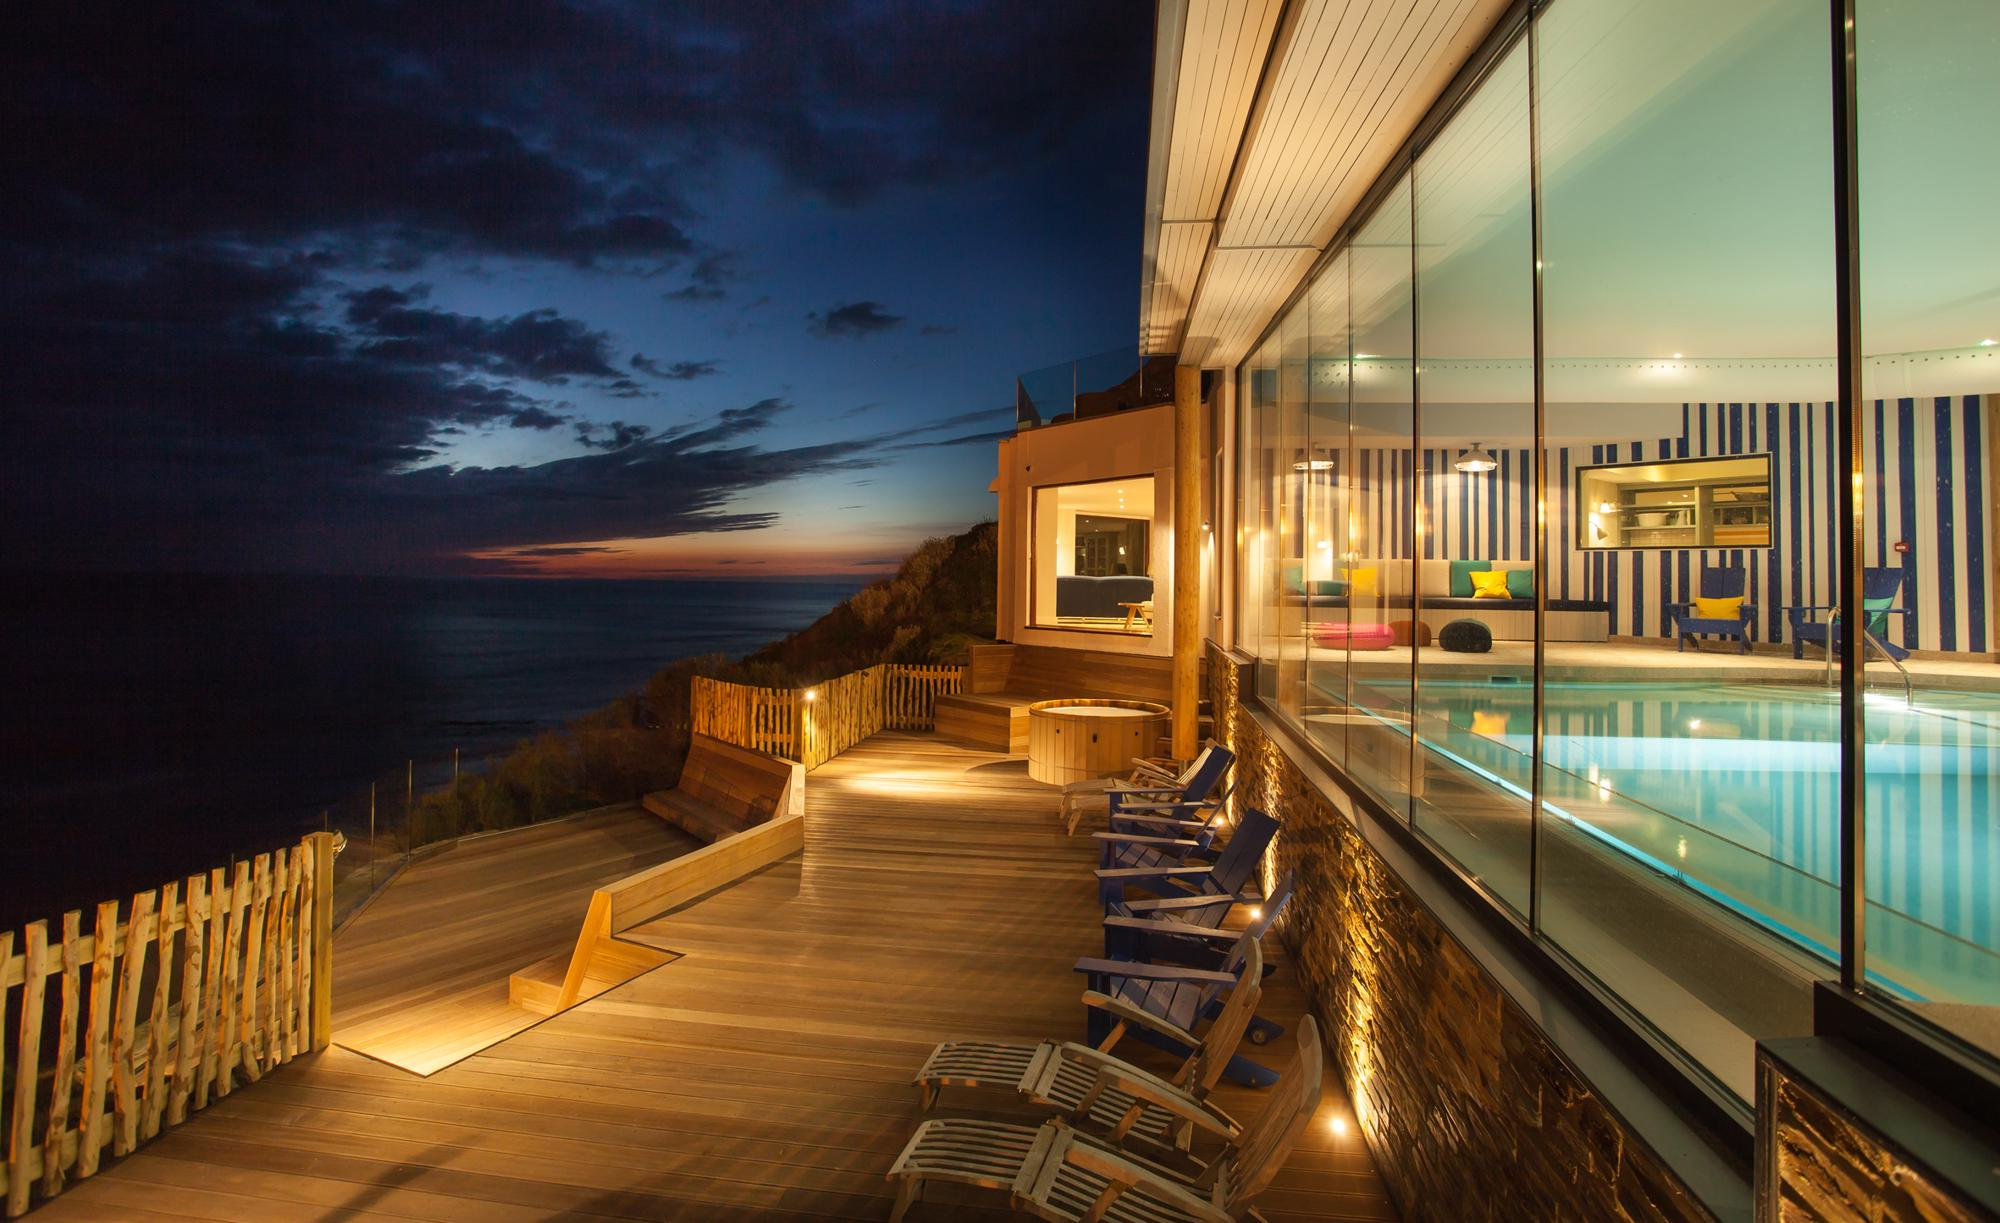 Hotels in Newquay holidays at Cool Places